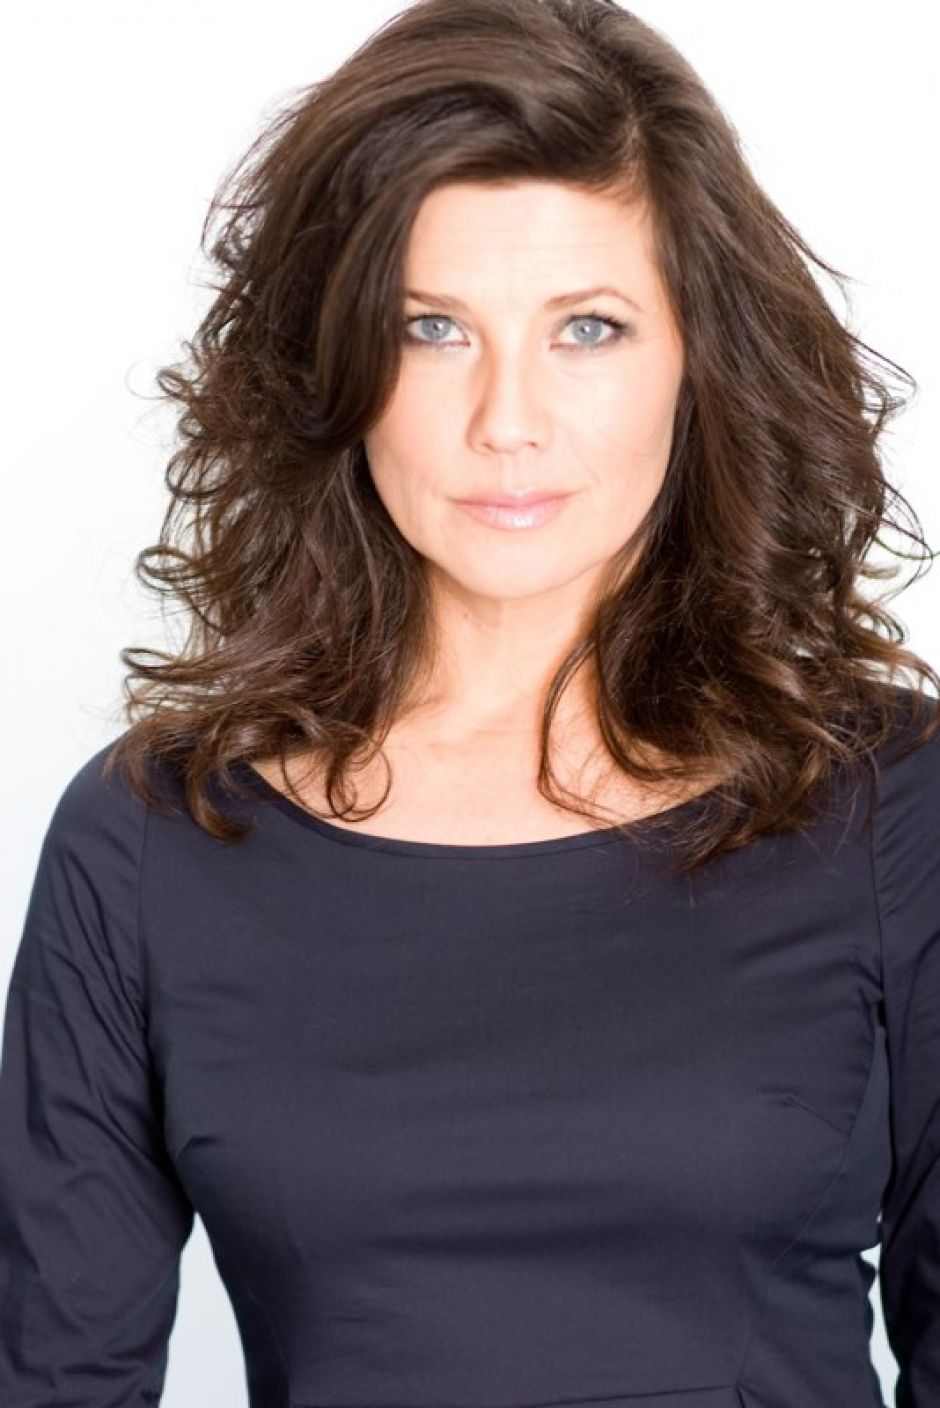 Daphne Zuniga Daphne Zuniga new photo